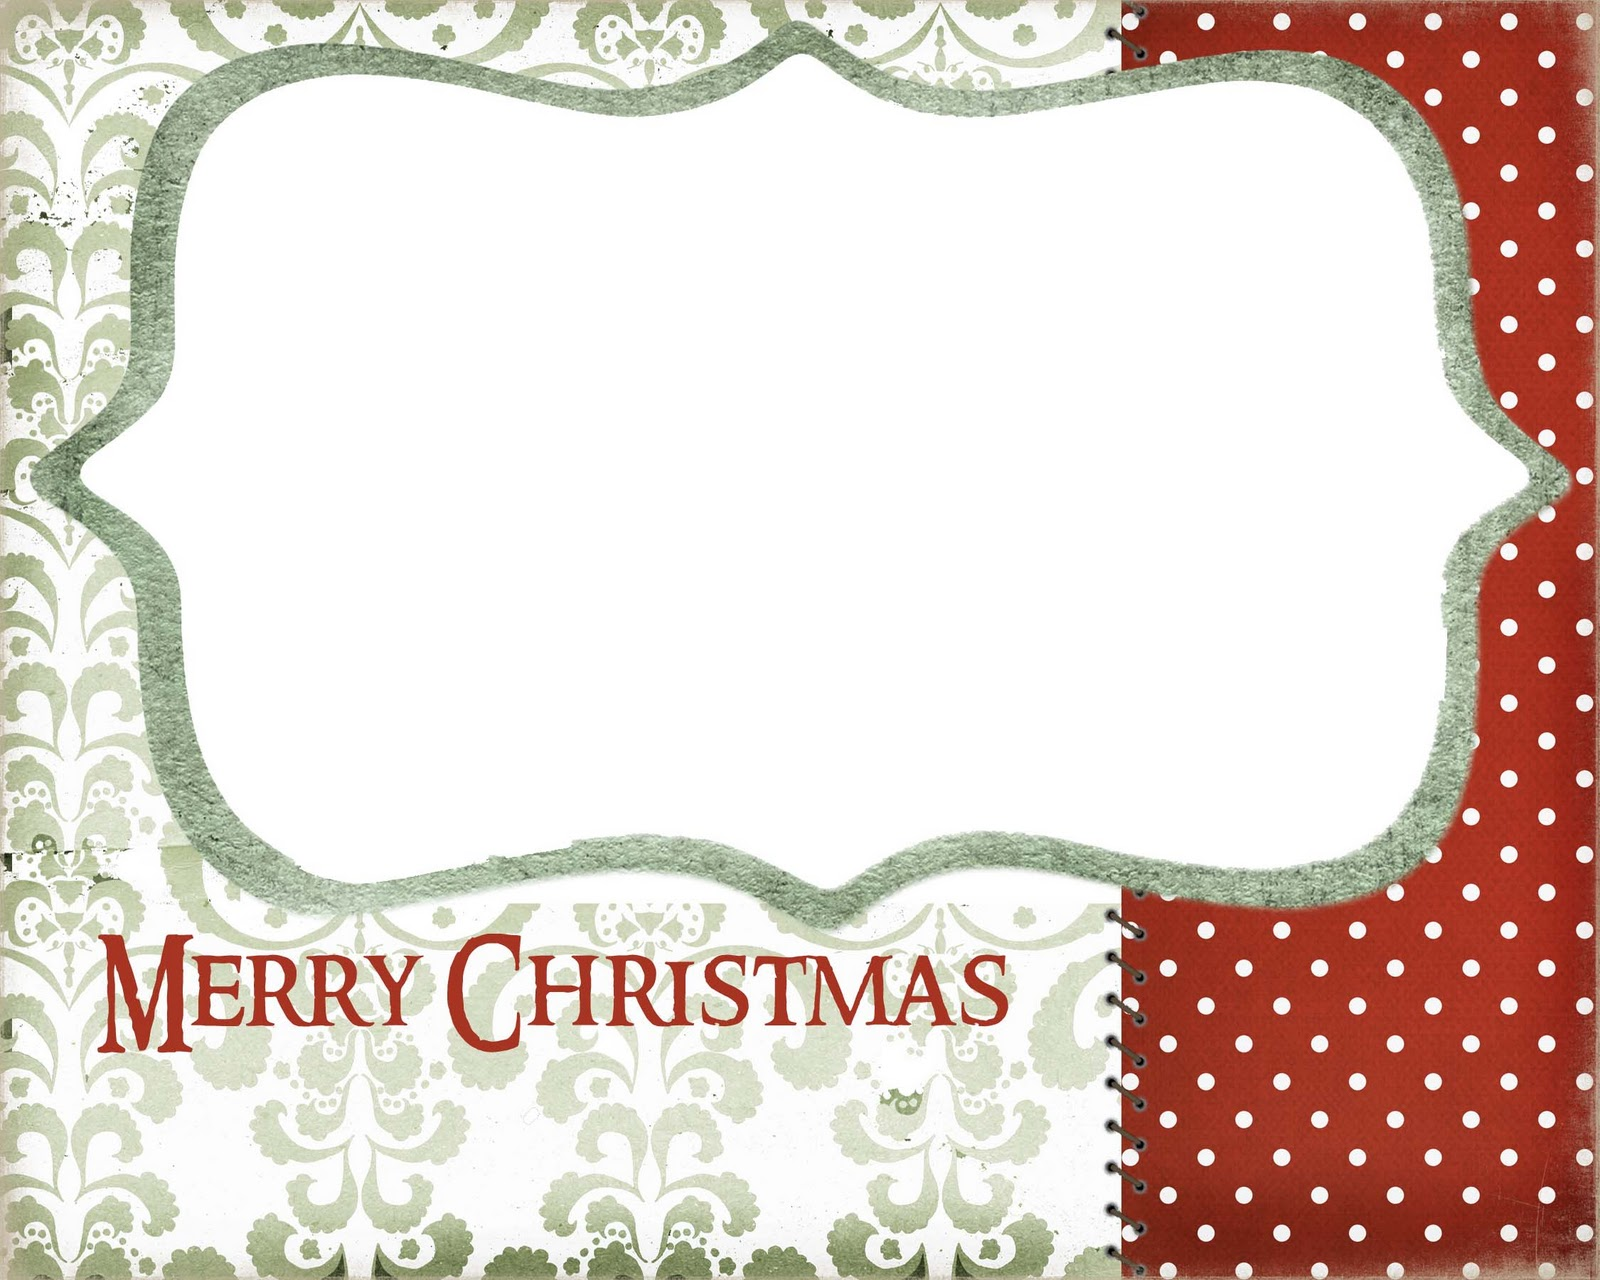 Christmas Card Display And 5 Free Printable Christmas Cards Guest AuymKRQo